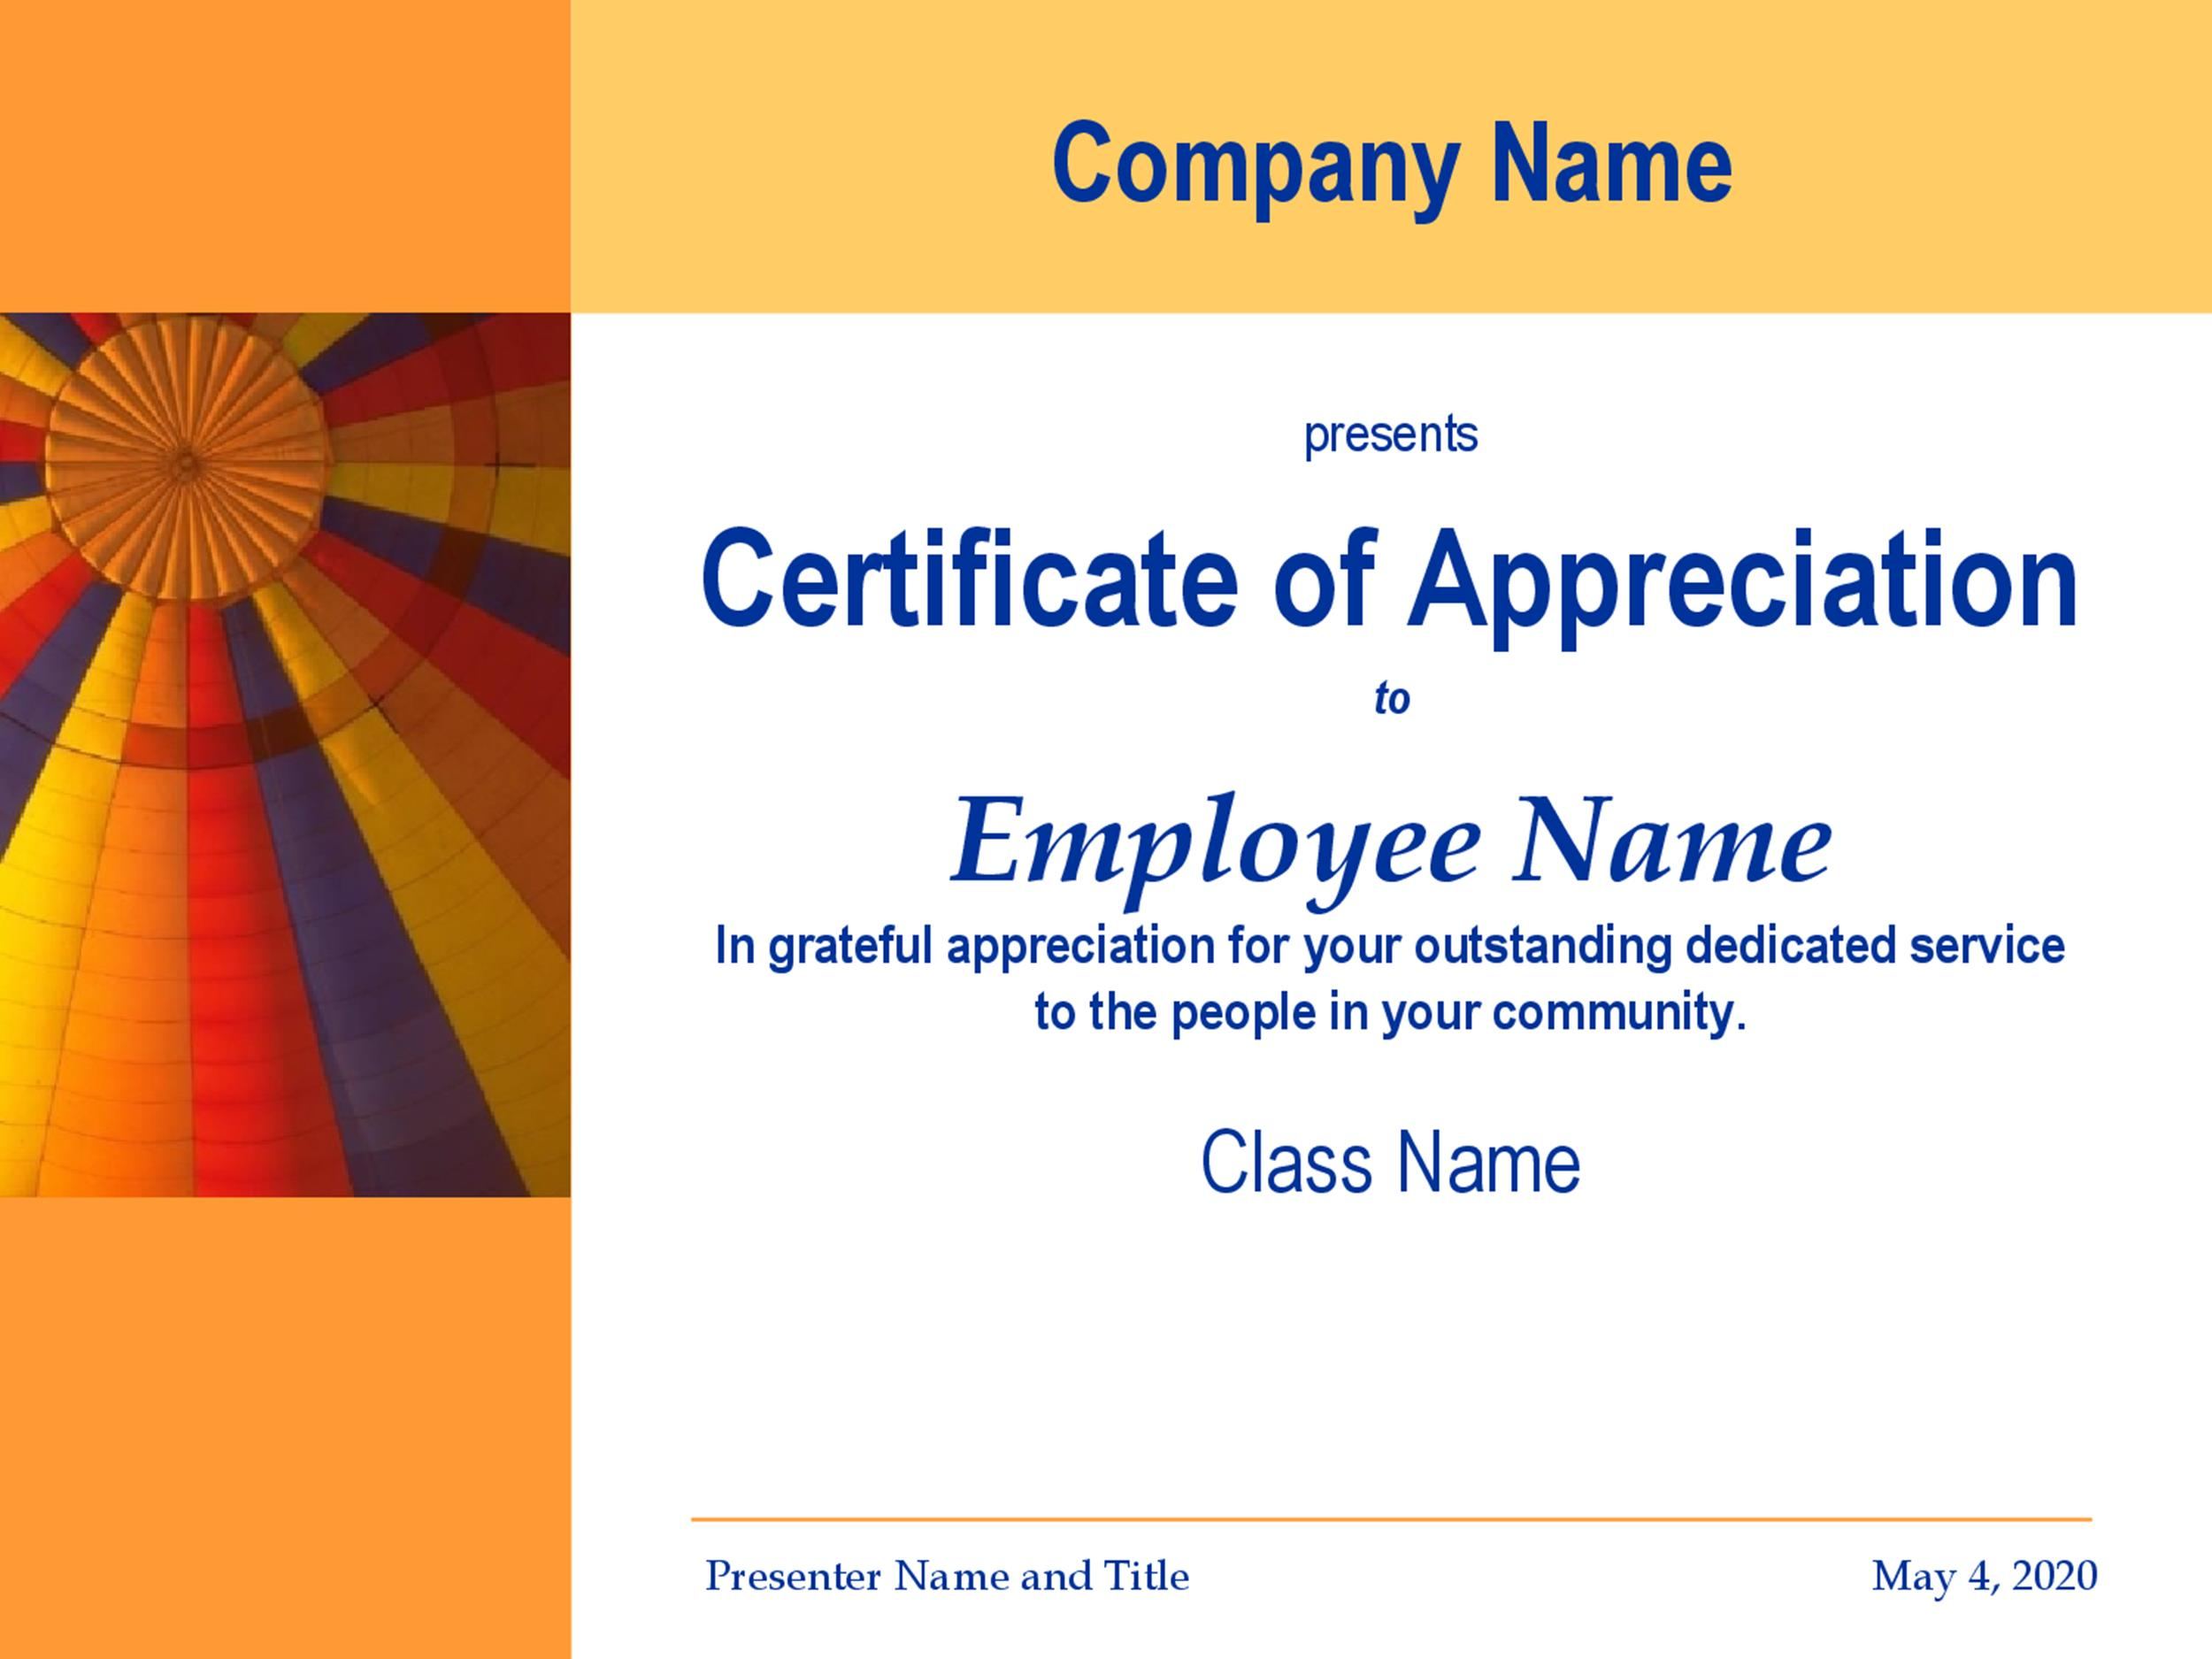 free certificate of appreciation 26 - Appreciation Certificate Template For Employee